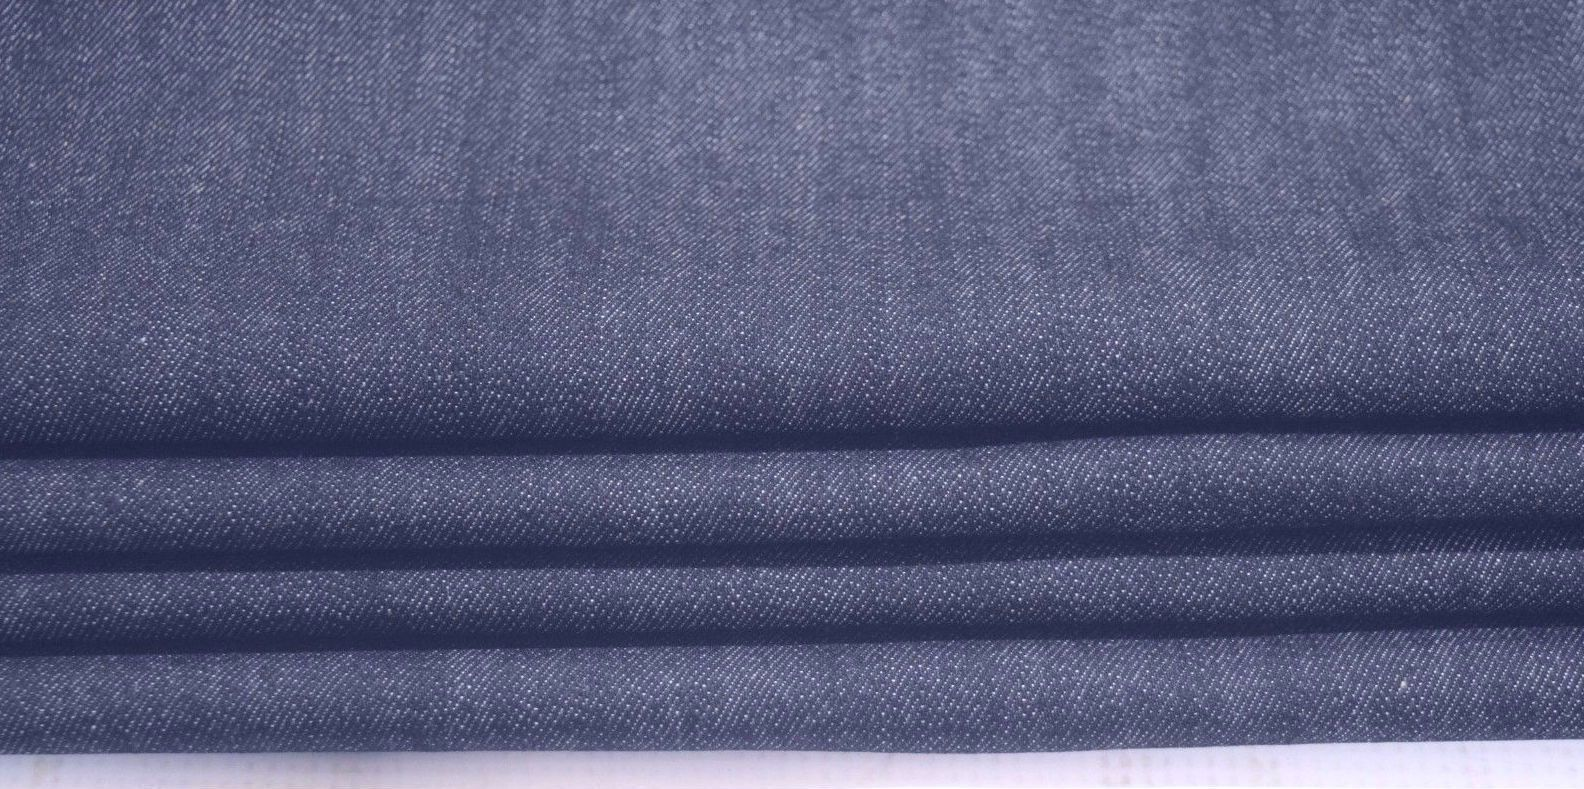 Premium 10 Oz Dark Blue Indigo 3 Stretch Denim Fabric 55 W Sold By The Yard Stretch Denim Fabric Fabric Creative Hobbies